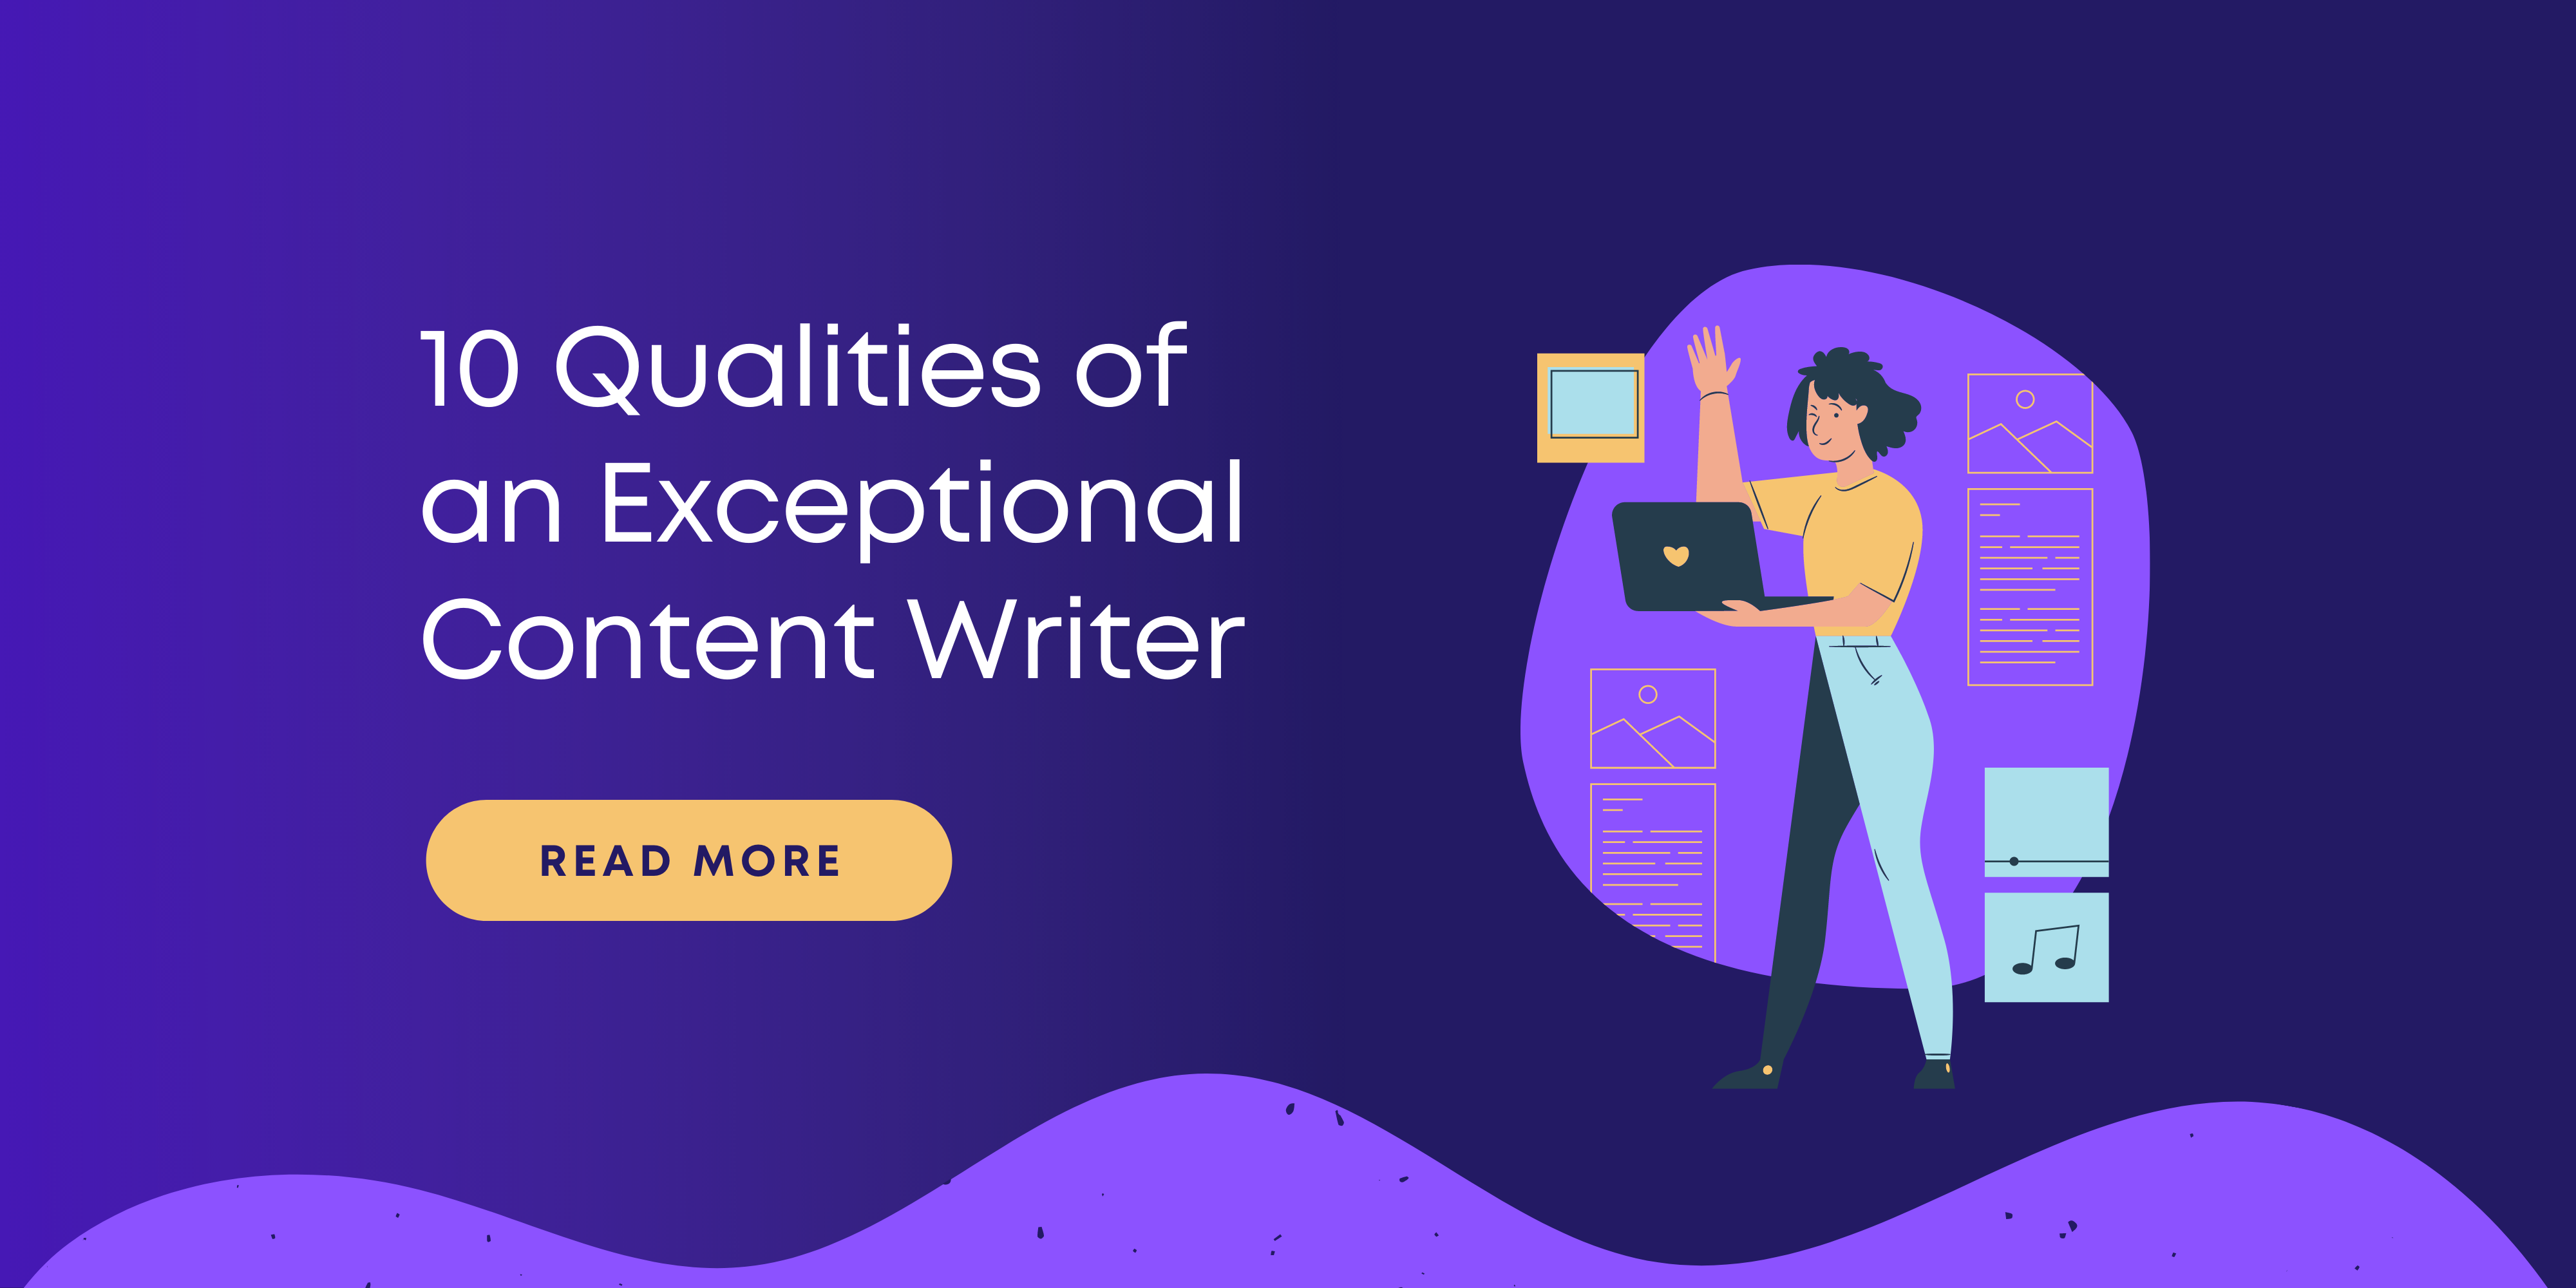 content writer, how to become content writer, content writing for beginners, content writing skills for beginners, content writing skills, content writing tips